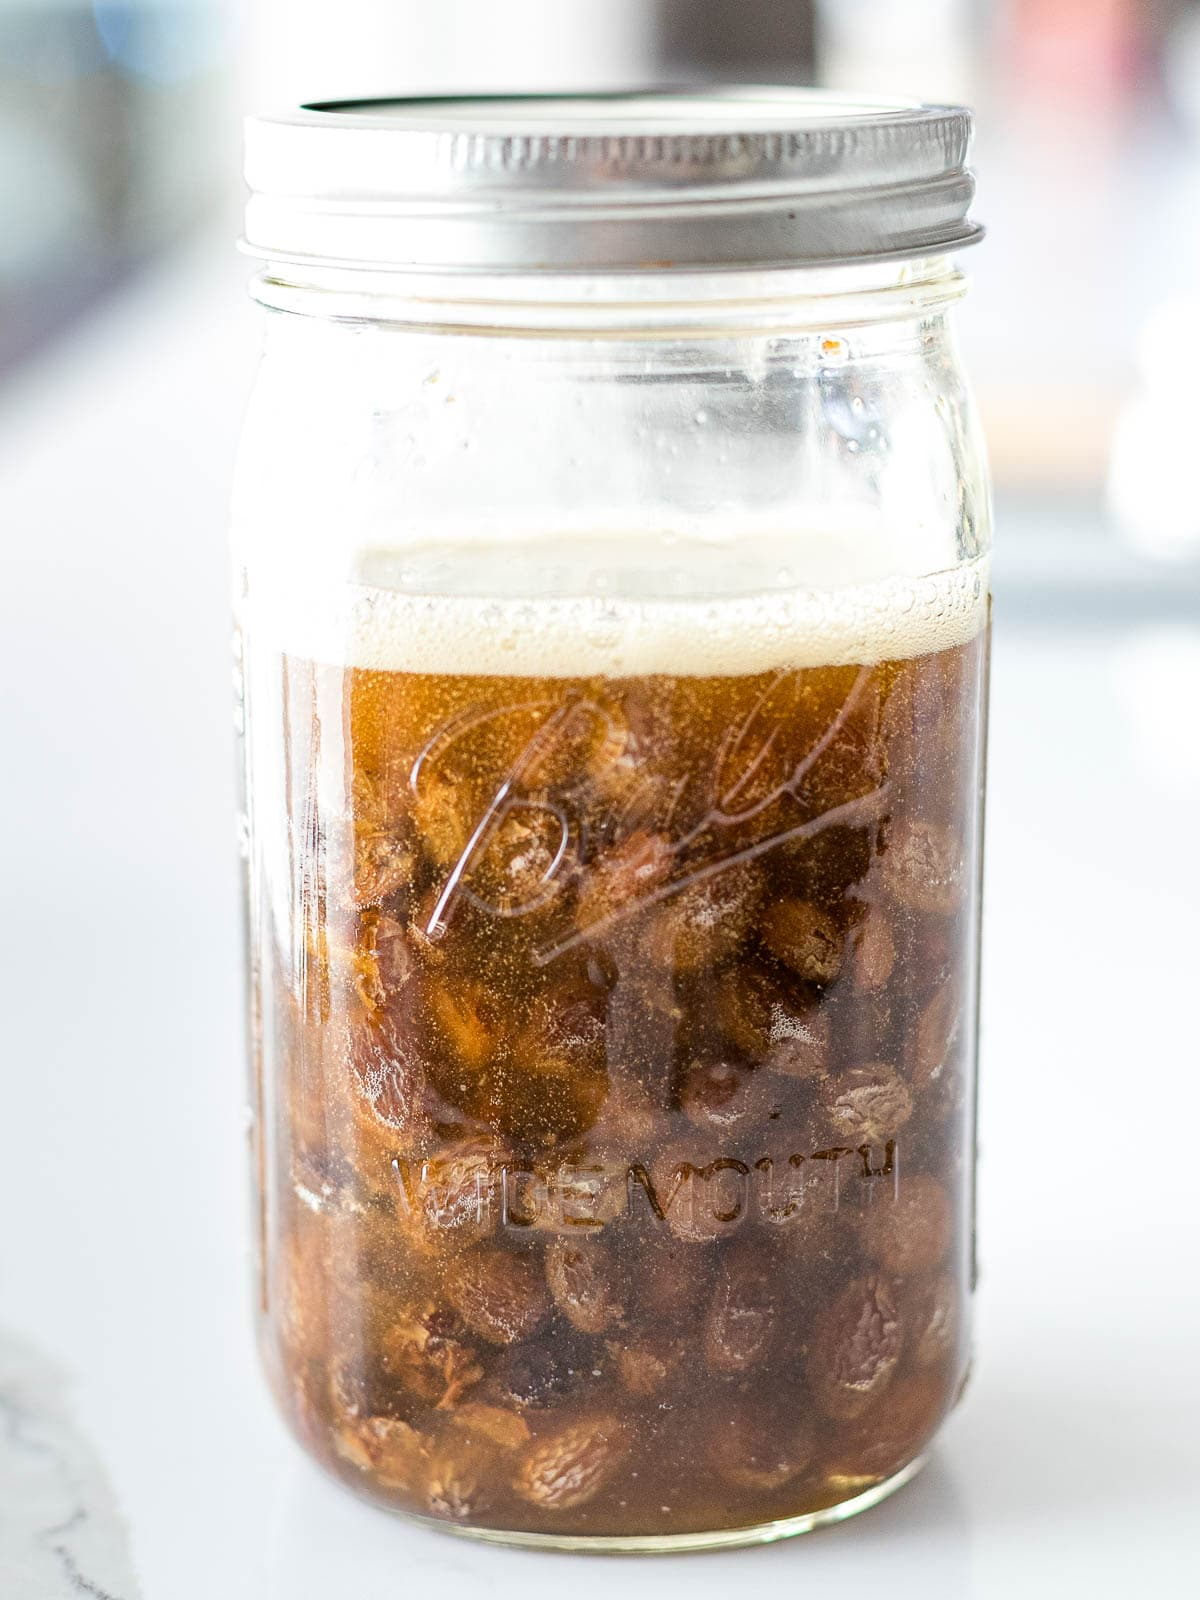 fruit yeast water in a mason jar with raisins and a foam layer on top